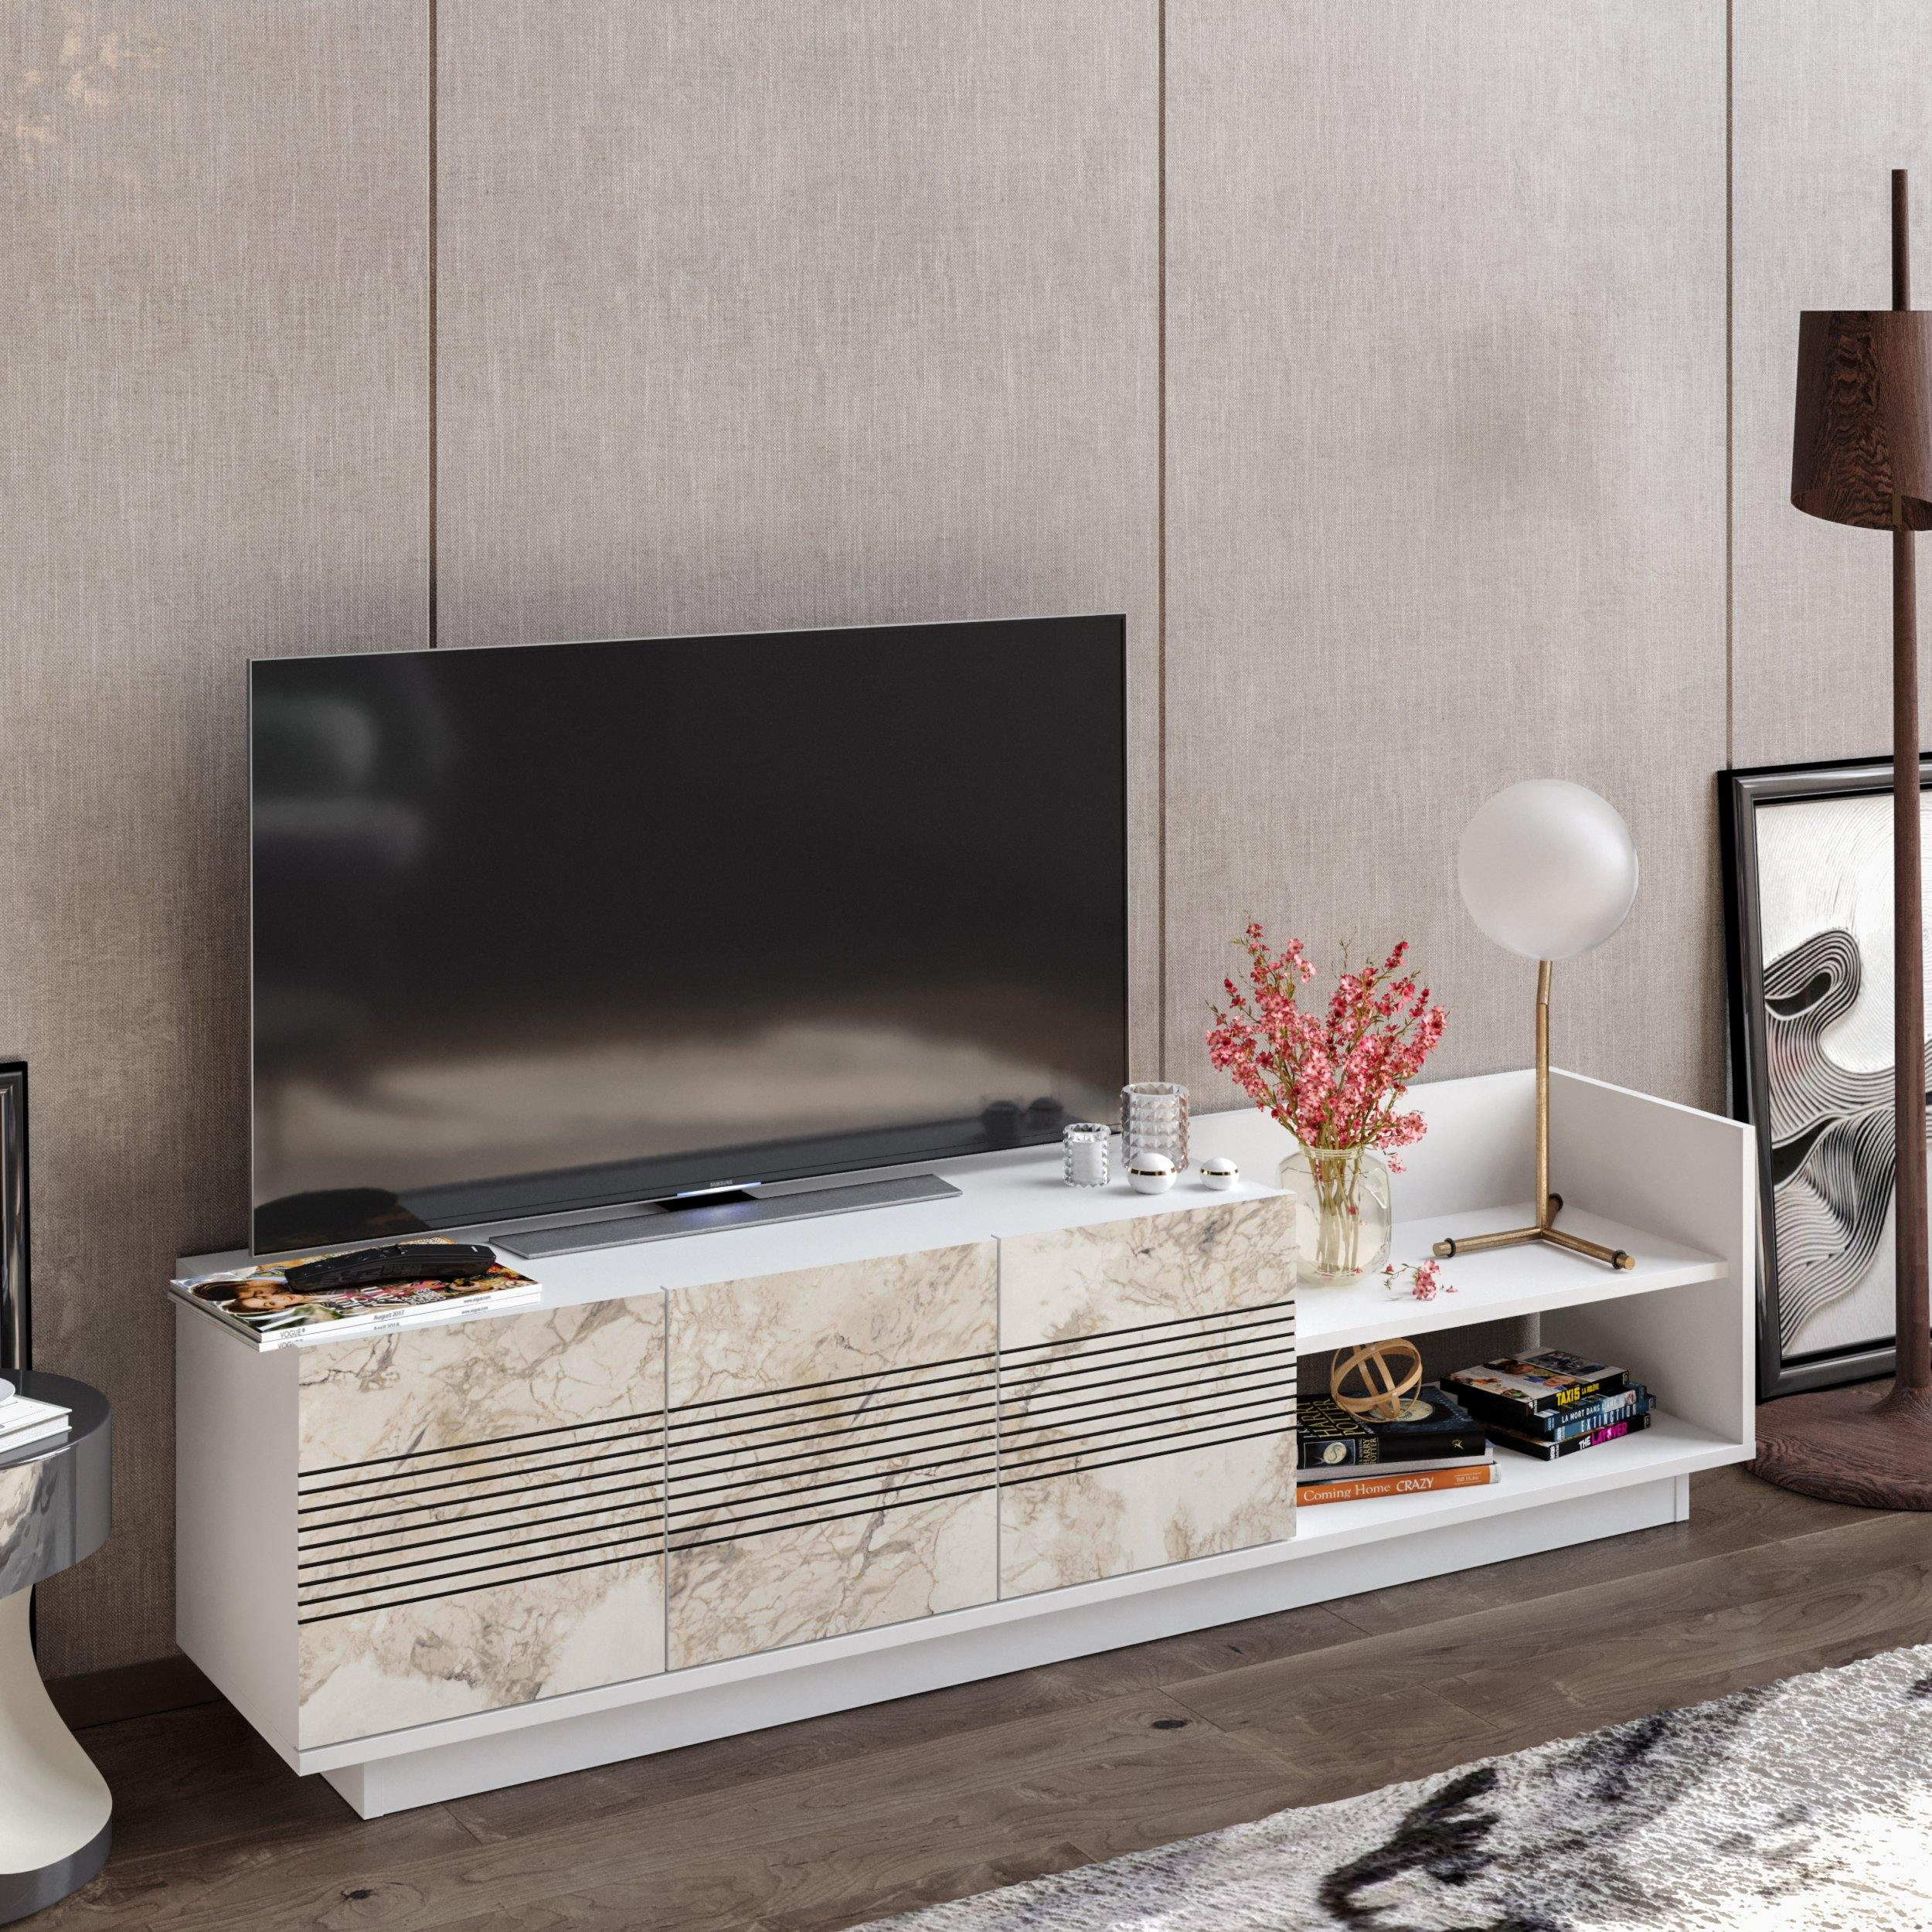 Viano TV Stand and Media Console for TVs up to 47